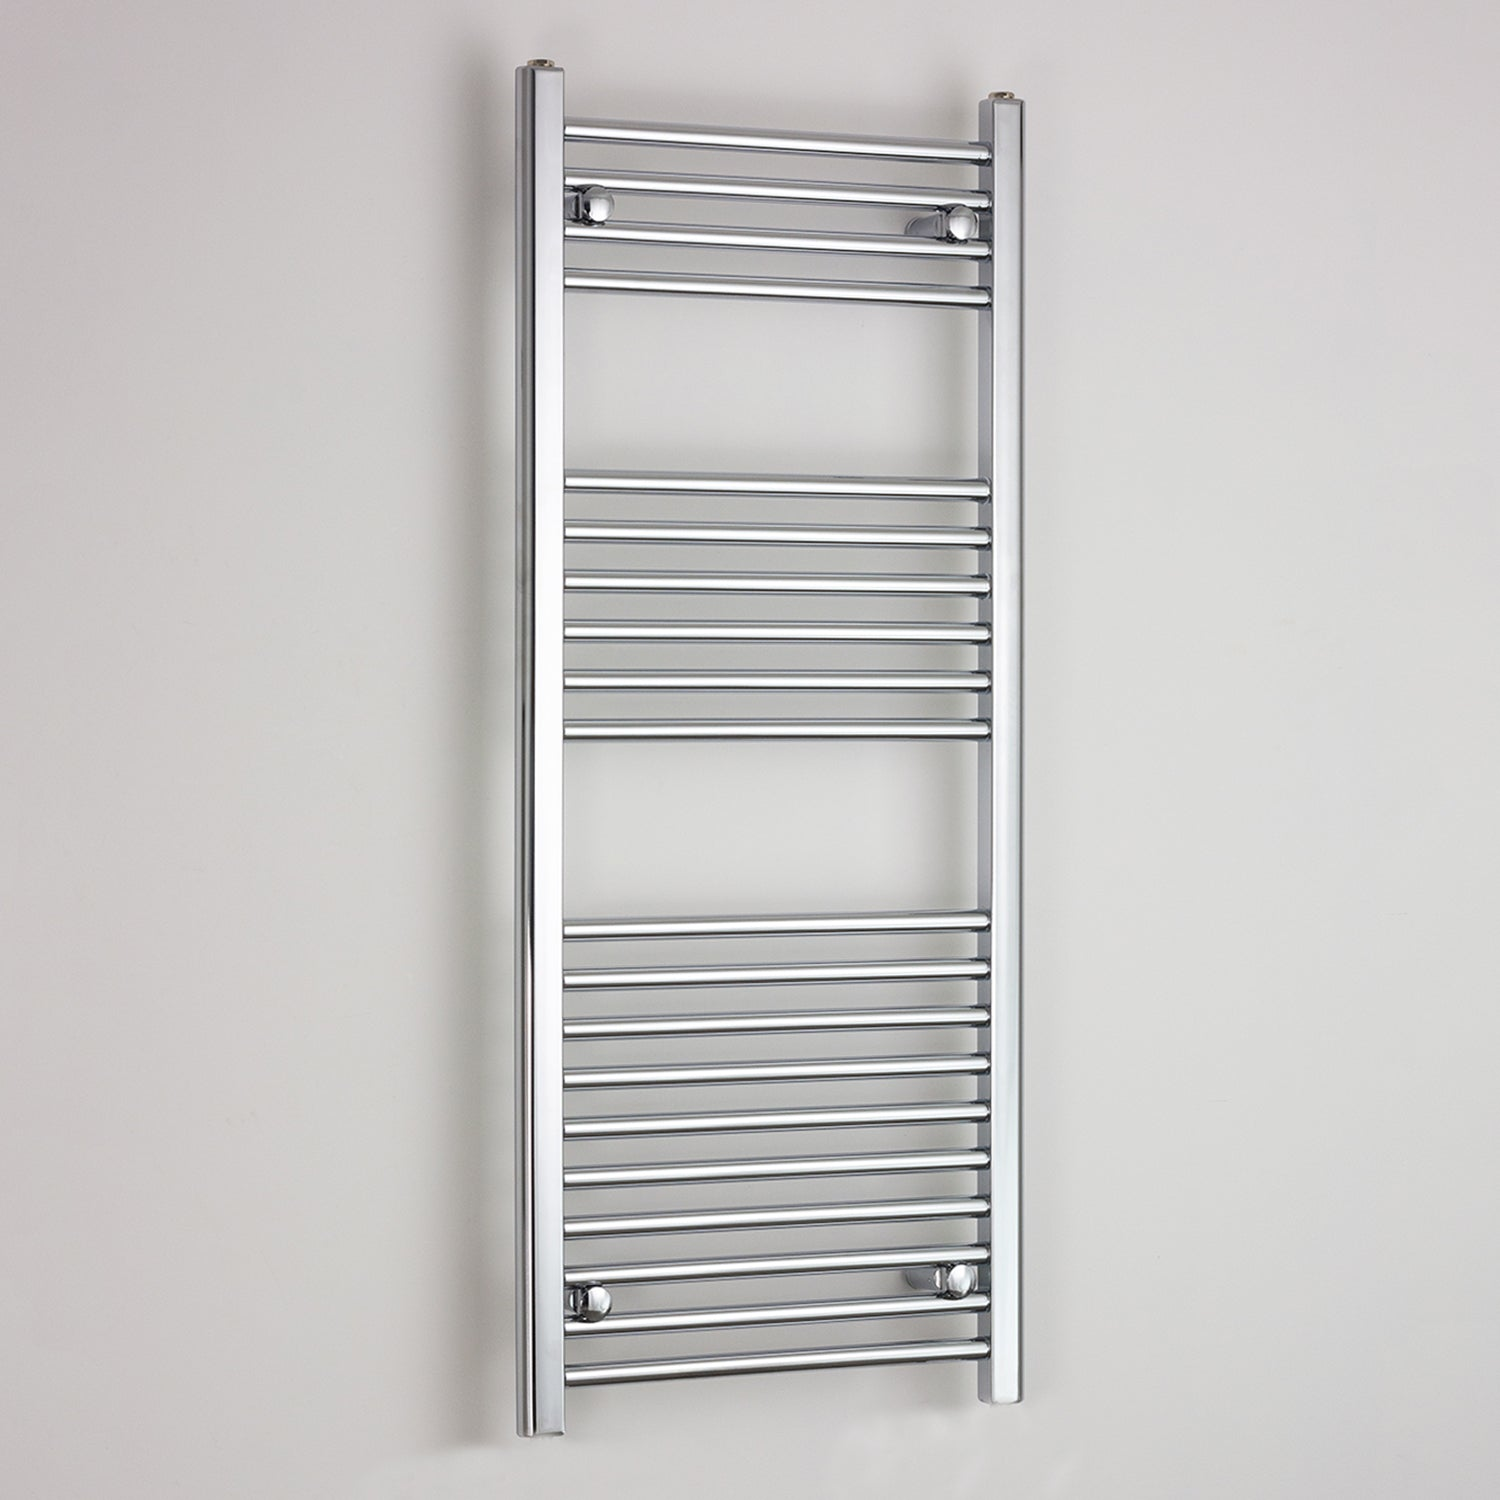 600mm Wide 1200mm High Flat Chrome Heated Towel Rail Radiator HTR,Towel Rail Only